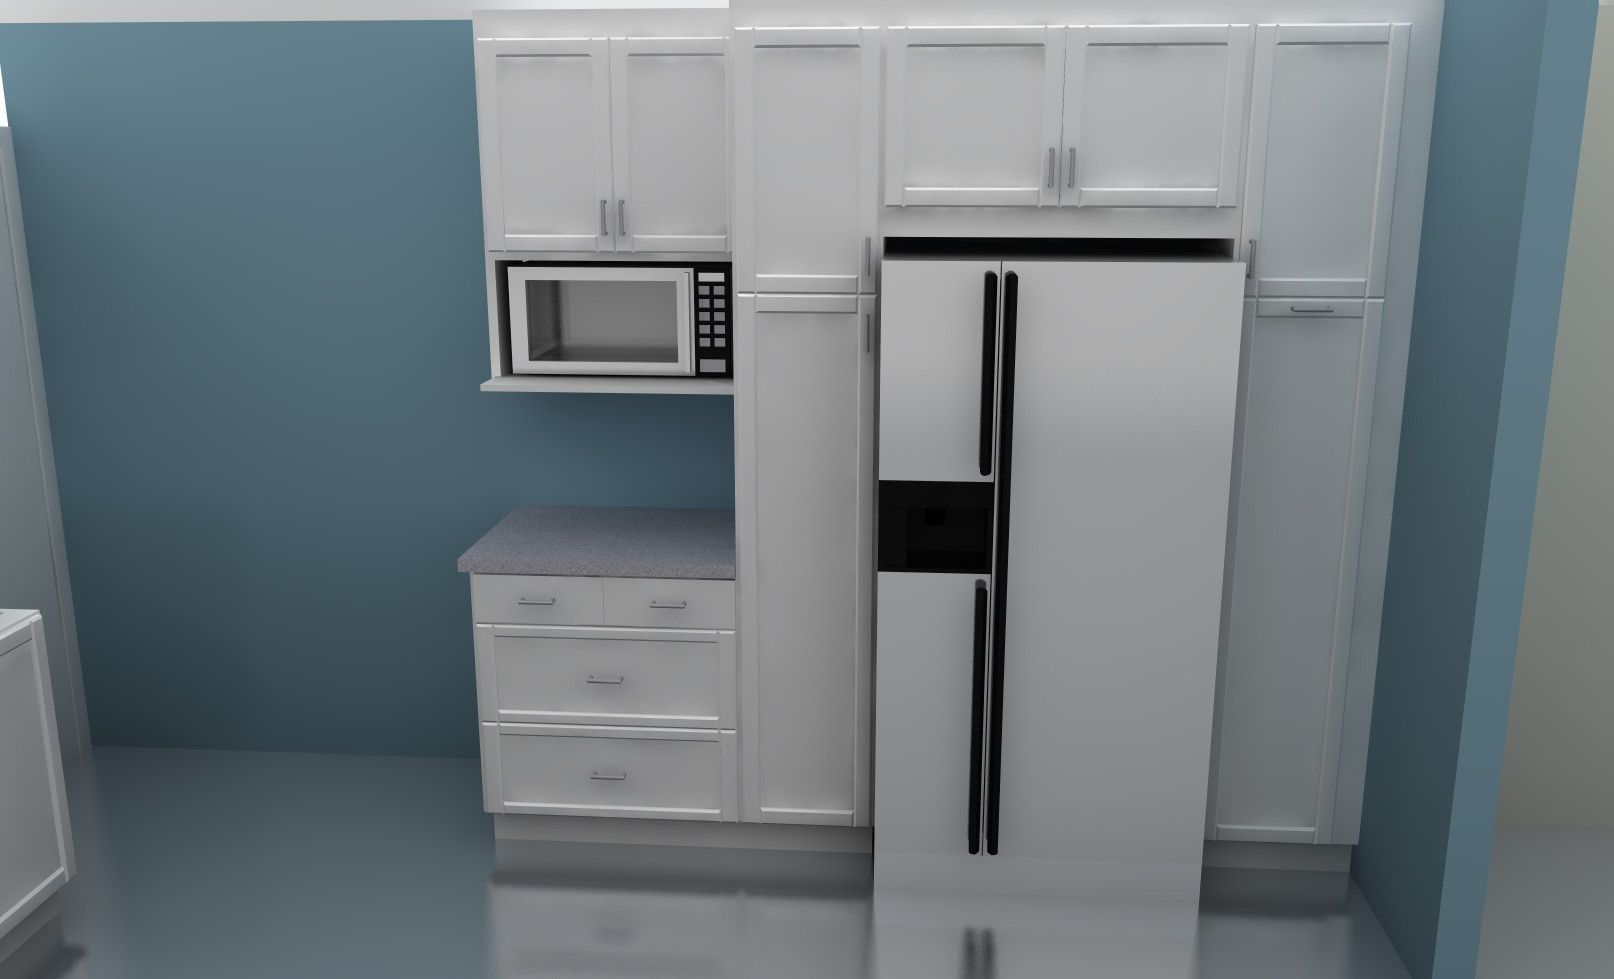 Ikea Kitchen Tall Corner Cabinet Pin By Rahayu12 On Interior Analogi Kitchen Pantry Cabinets